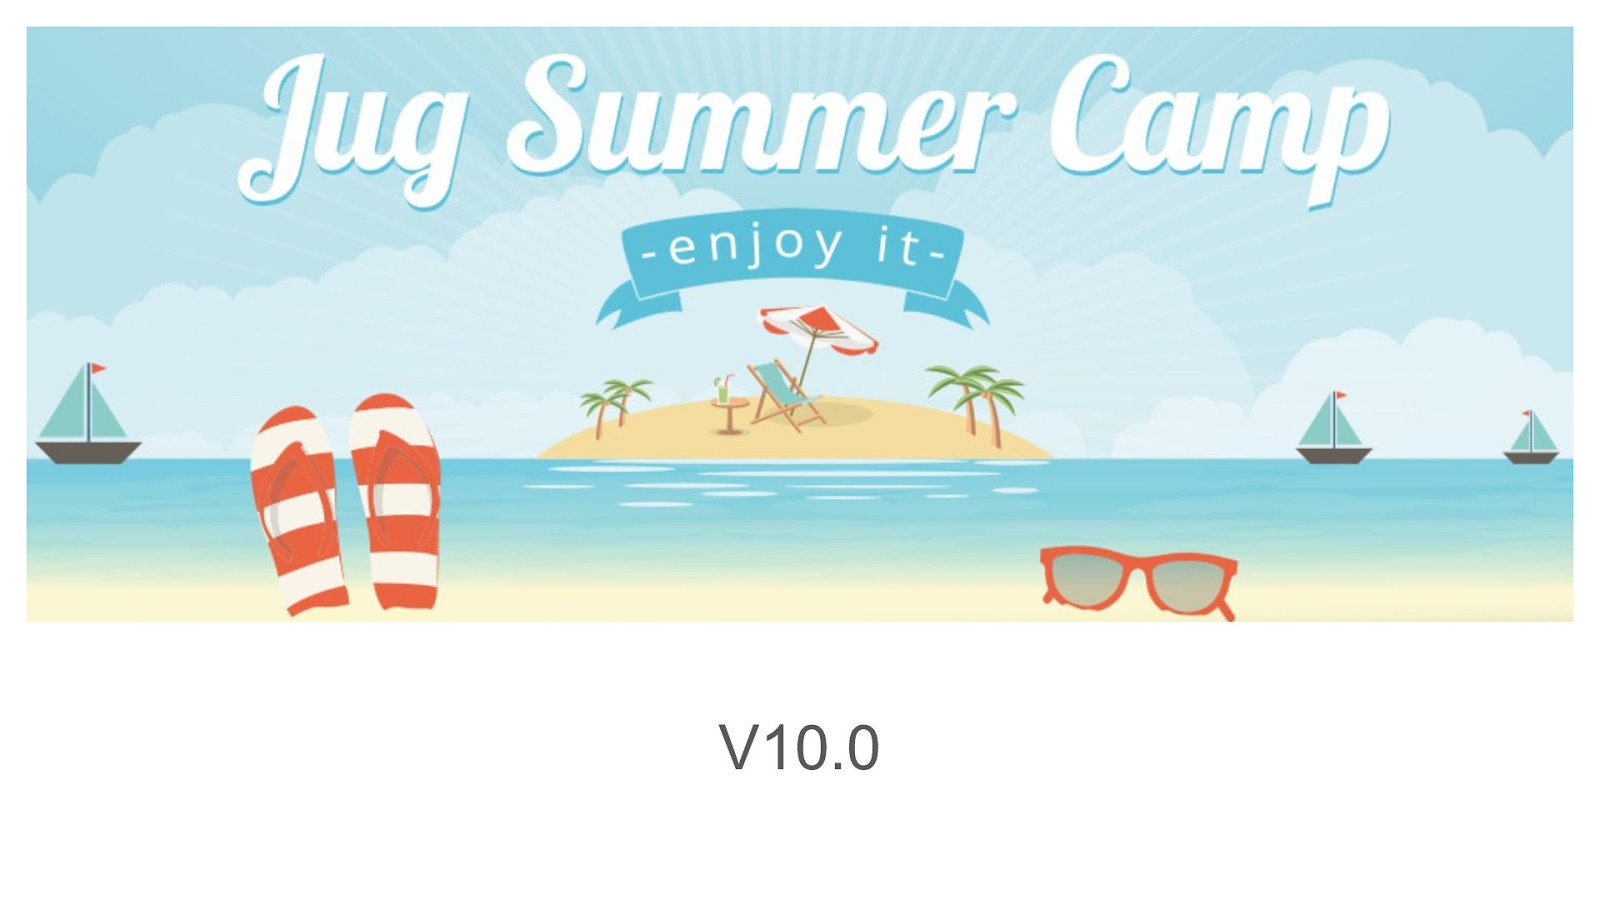 Keynote: Jug Summer Camp v10.0